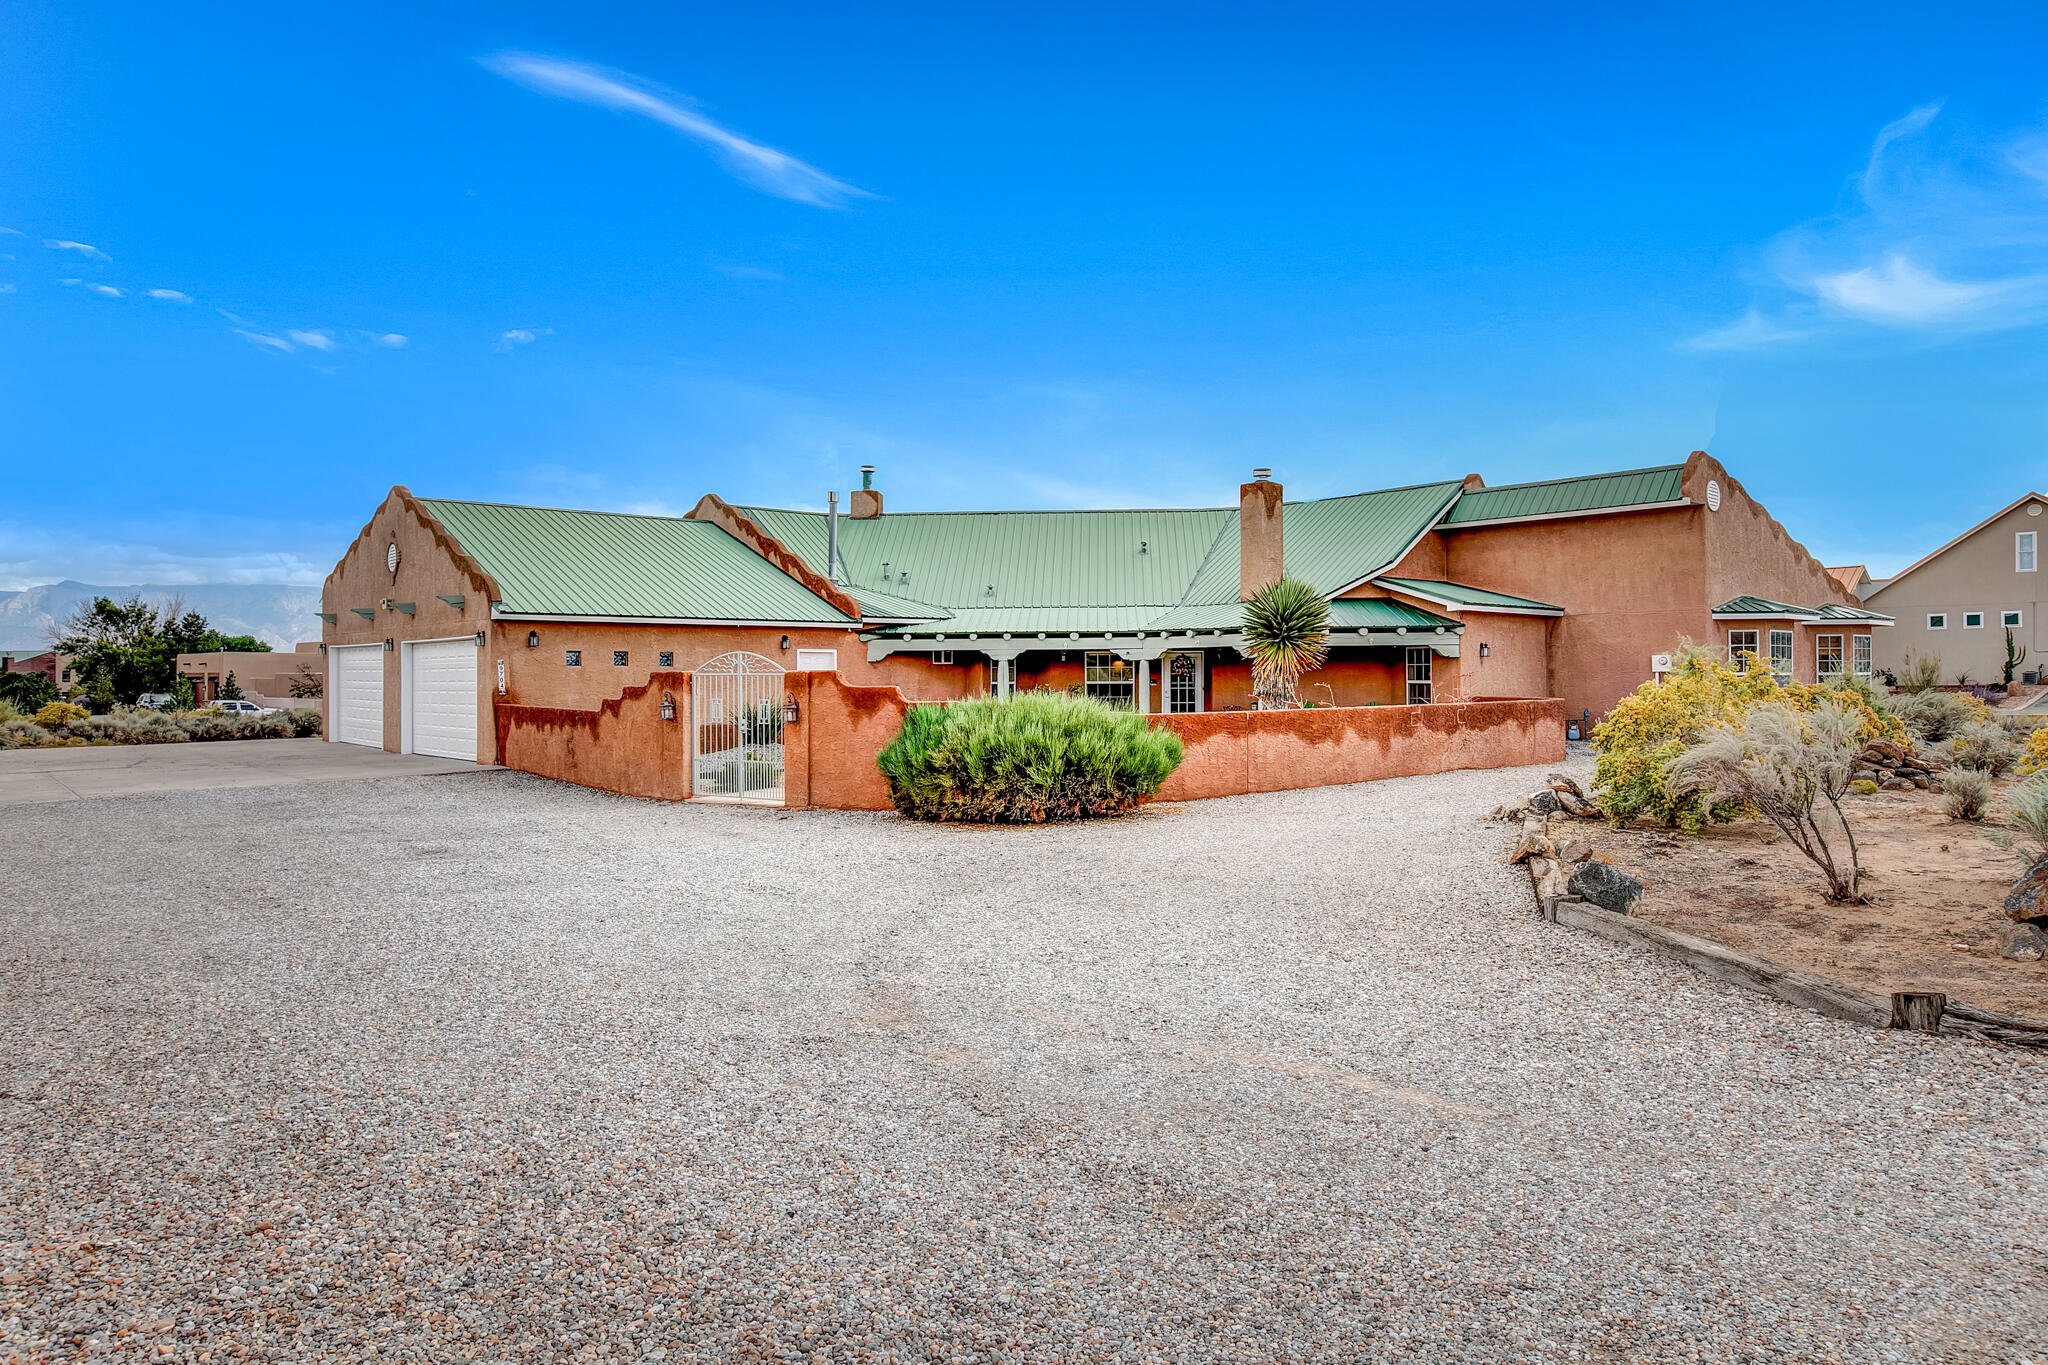 Welcome home to this magnificent Southwest custom filled with charm!  The open floorplan is perfect for entertaining or family gatherings.  Large kitchen offers updated appliances, wrap around breakfast bar with plenty of seating, and cabinets/counters GALORE!!!  Romantic primary suite includes sitting area, fireplace, 5 piece bath, huge walk in closet, and access to the patio where the hot tub is just a few steps away.  Ample sized additional bedrooms are separate from primary.  Oversized 4 CAR garage includes an extra storage room too!  One acre lot is natural landscape and inside the private courtyard and backyard are southwest native plantings.  On occasion, there's even the opportunity to see a few  hot air balloons floating overhead!!